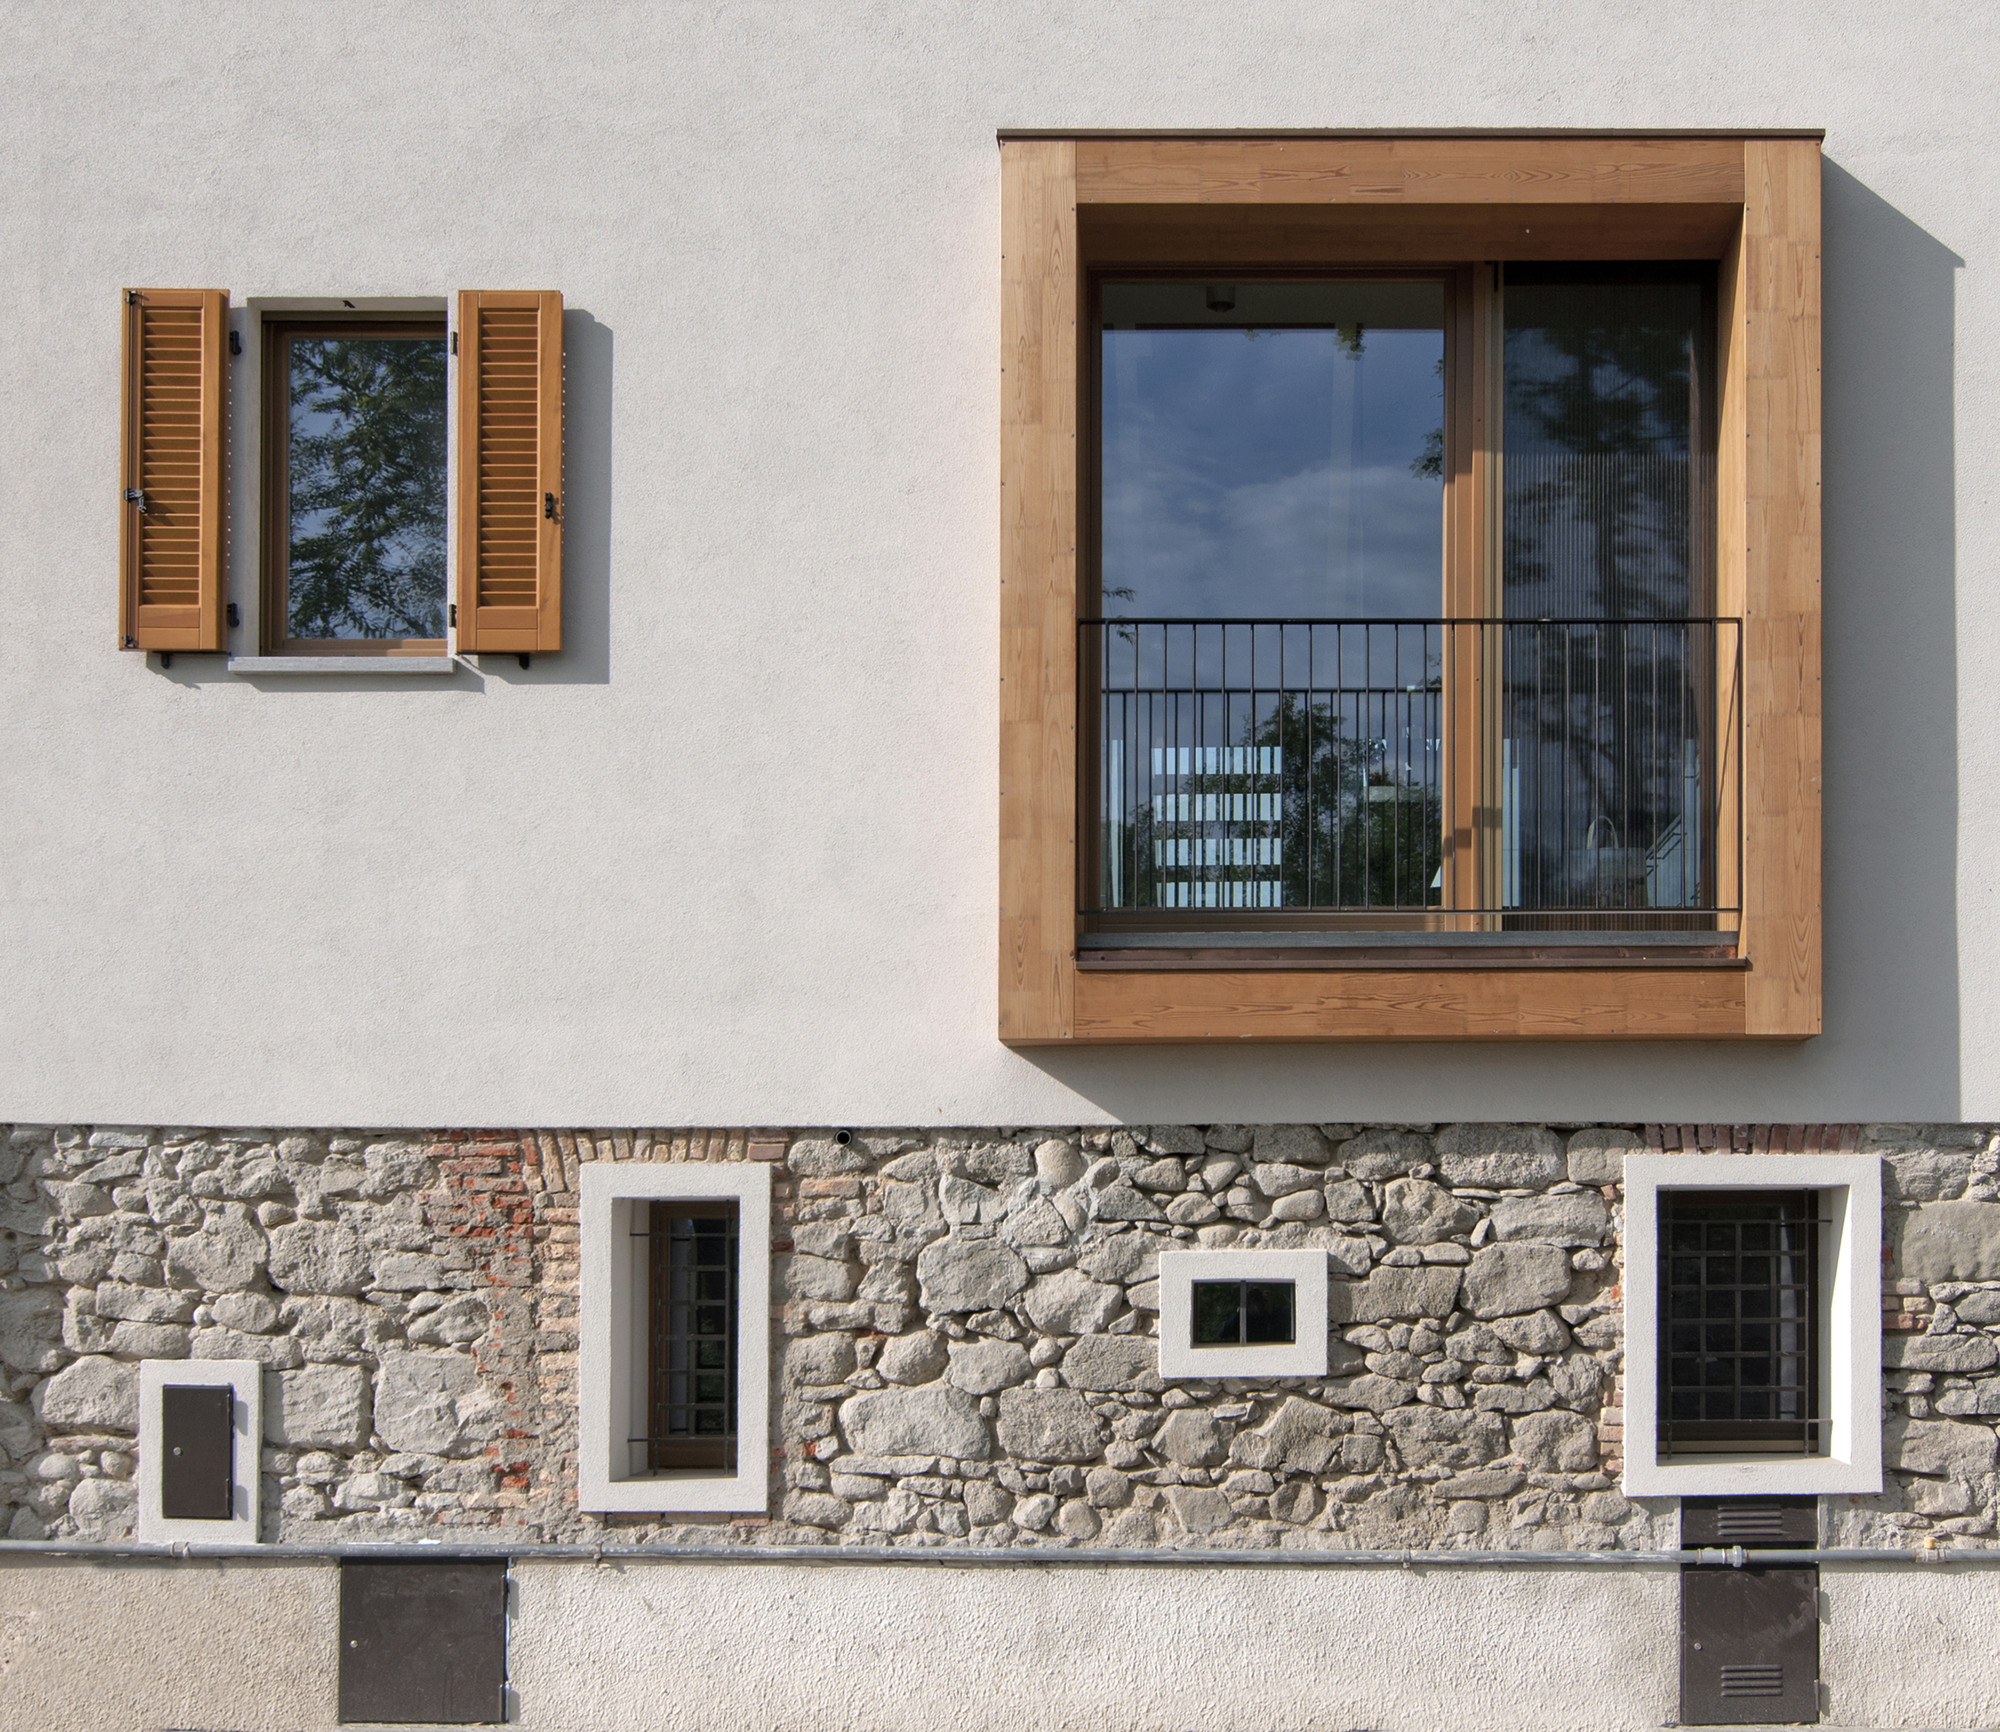 Refurbishment of an Old Barn / Arcoquattro Architettura